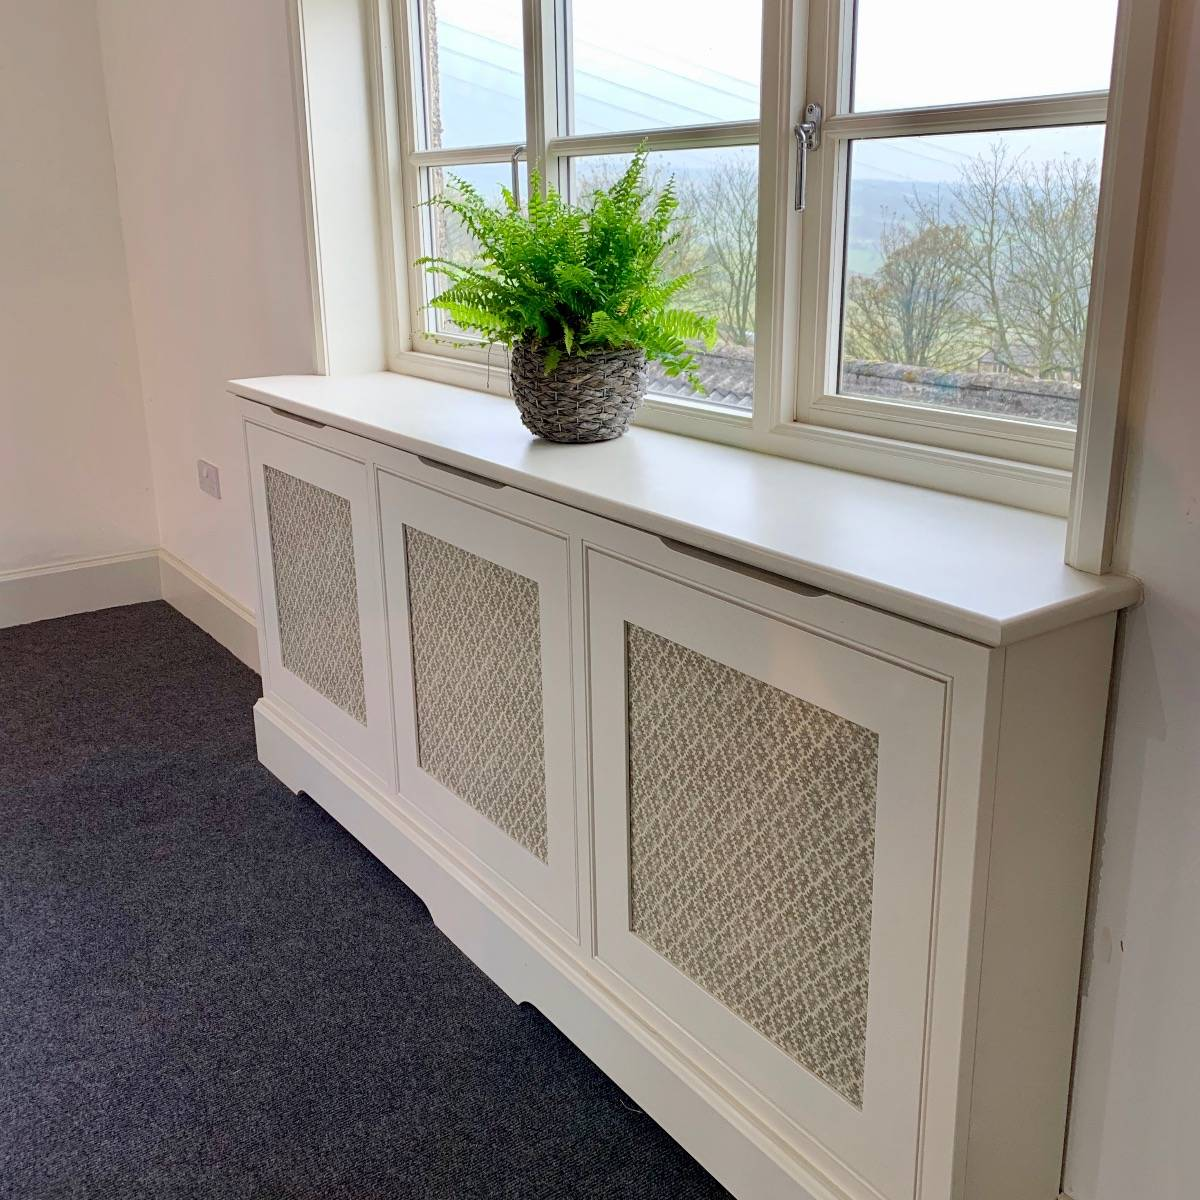 Bespoke radiator cover with fabric insert